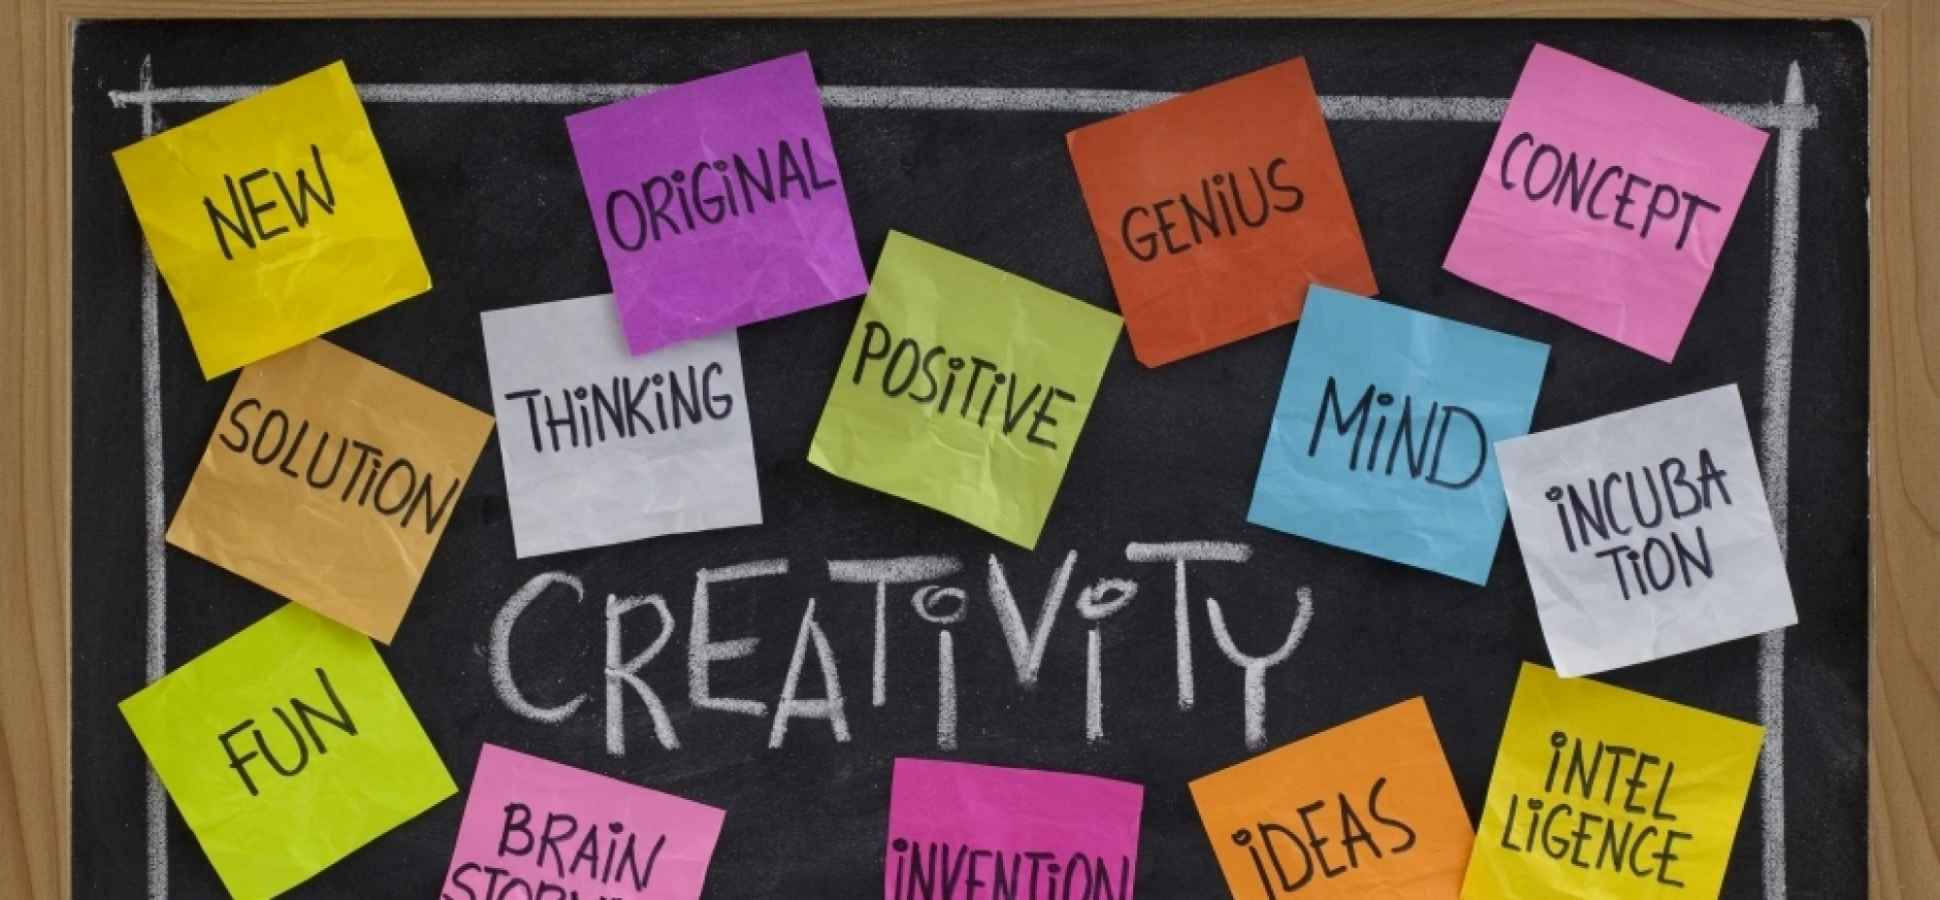 How to Find an Idea for a Business